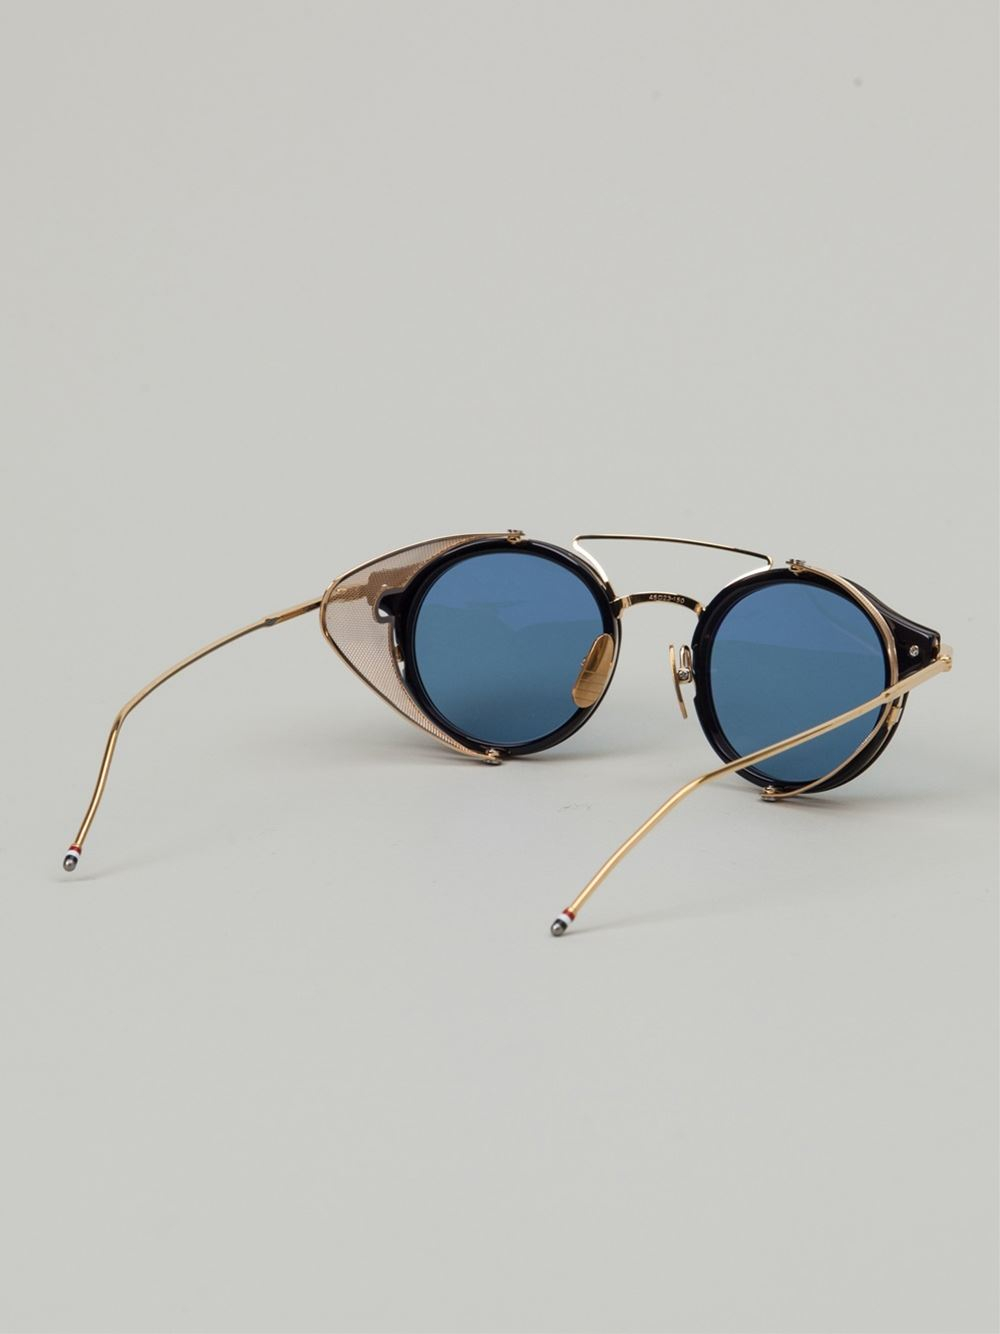 Round Gold Frame Sunglasses By Thom Browne : Thom browne Round Frame Sunglasses in Gold (blue) Lyst